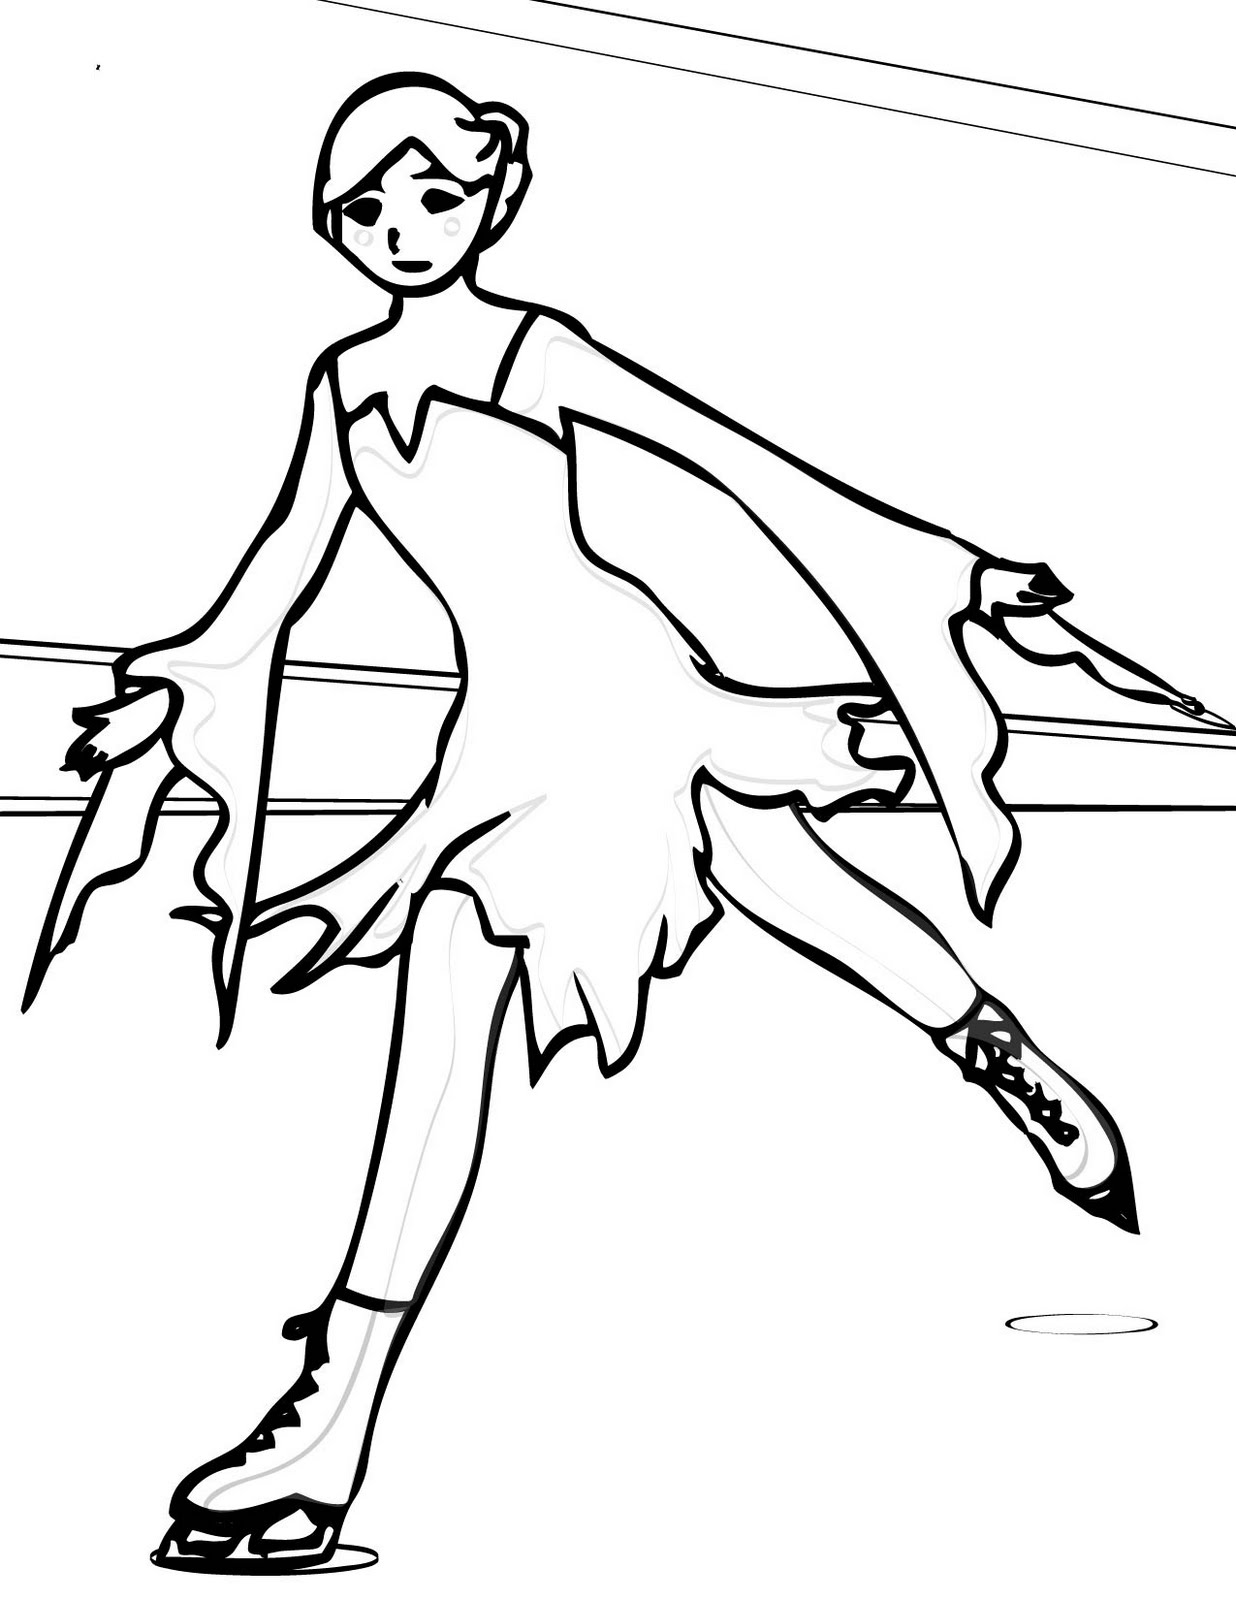 ice skating colouring pictures ice skating coloring pages coloring pages to download colouring skating ice pictures